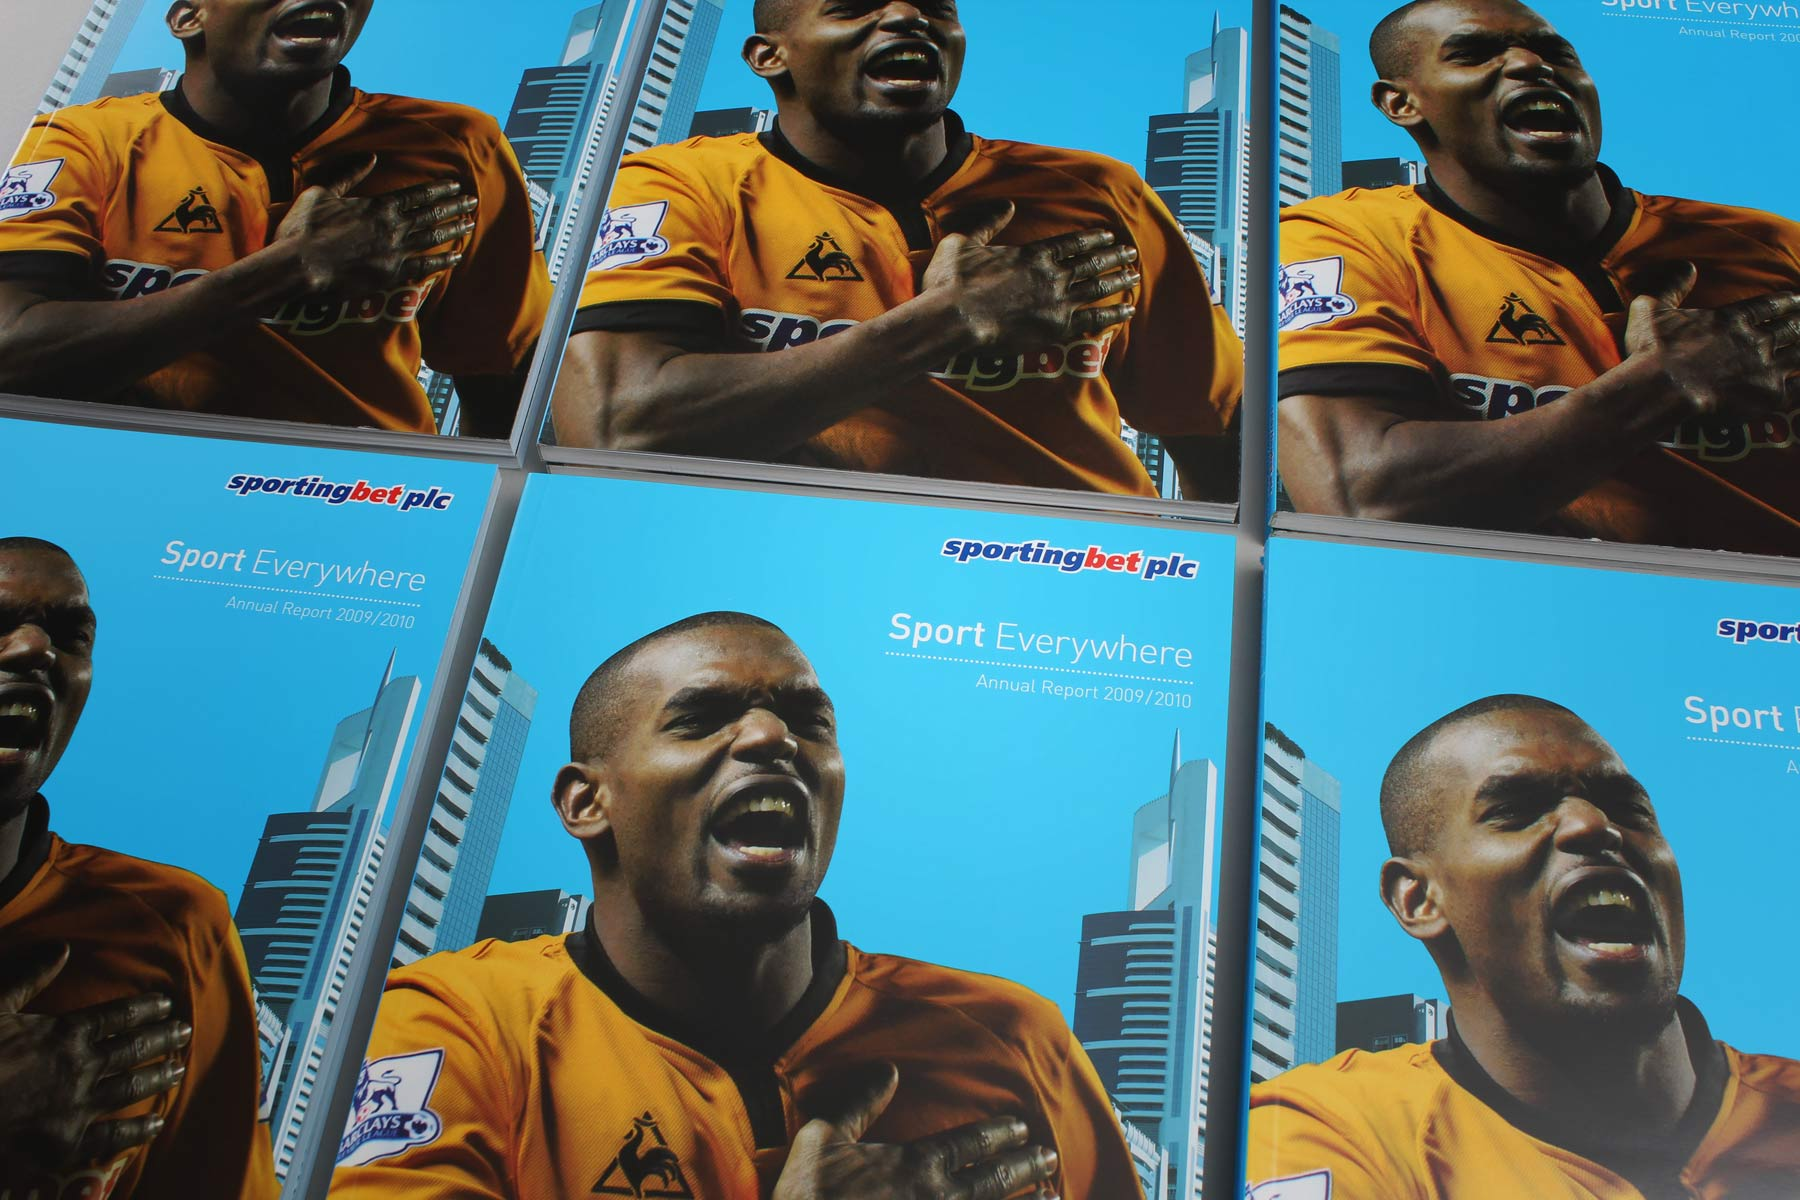 The cover of the report shows the Wolverhampton strip and Sportingbet sponsorship - A key promotional part of the brand.